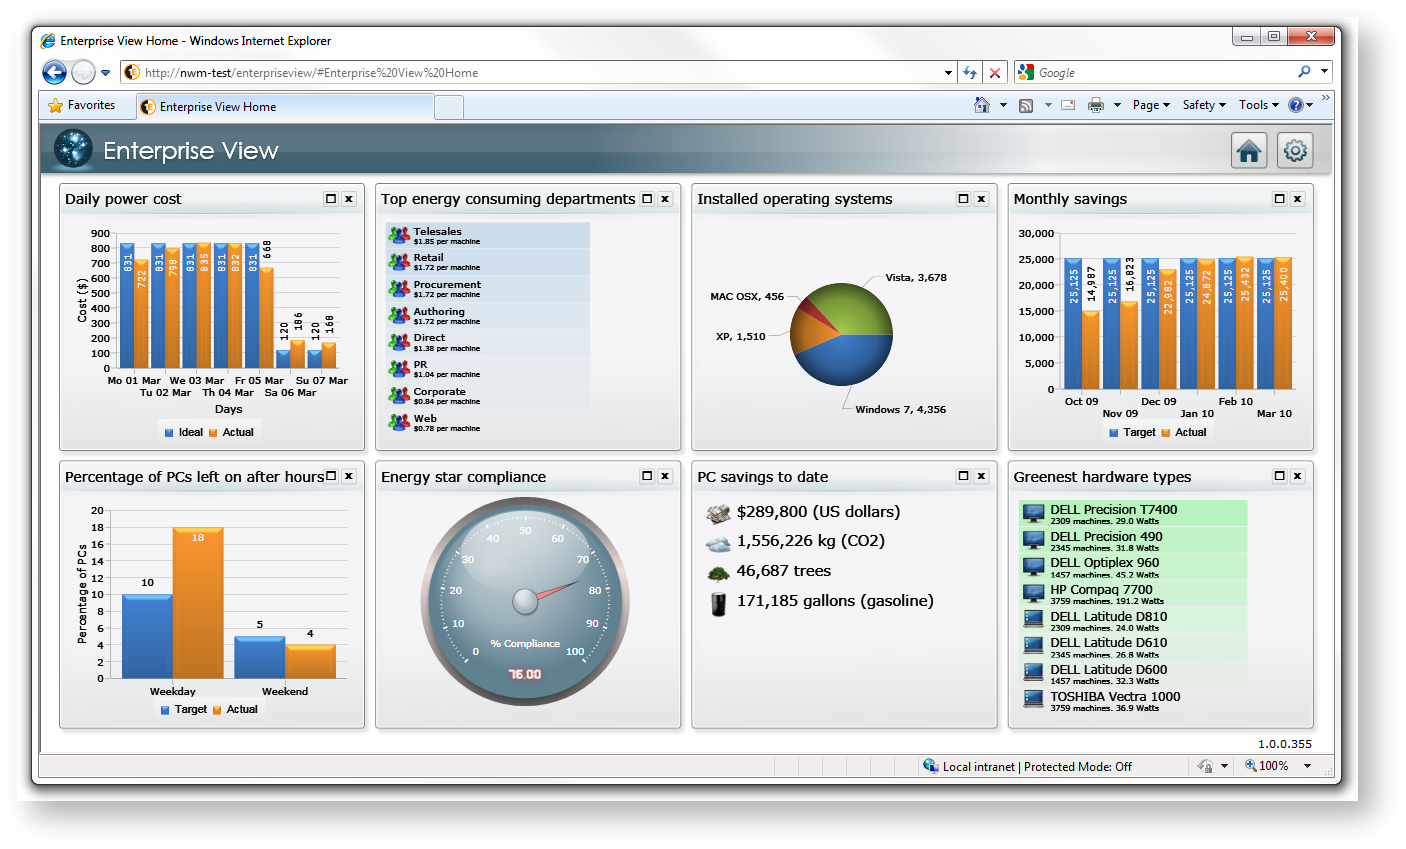 The Enterprise View dashboard